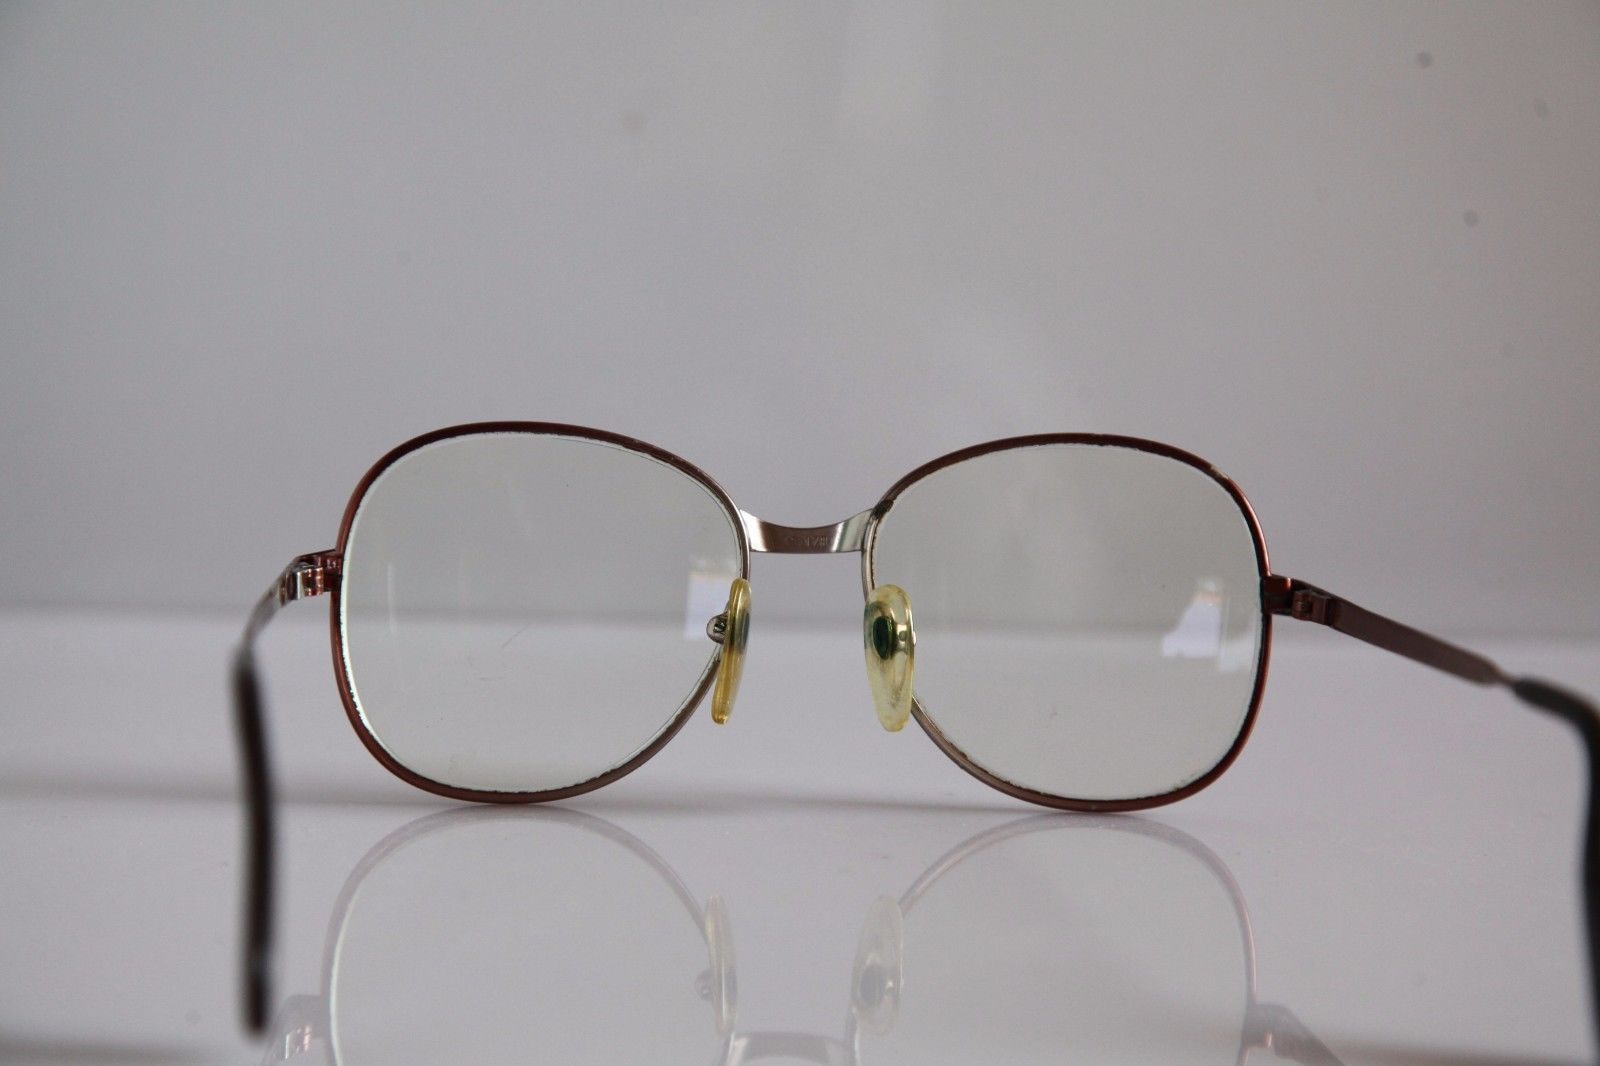 RODENSTOCK Eyewear, Salmon Pink  Frame,  RX-Able Prescription lens. Germany